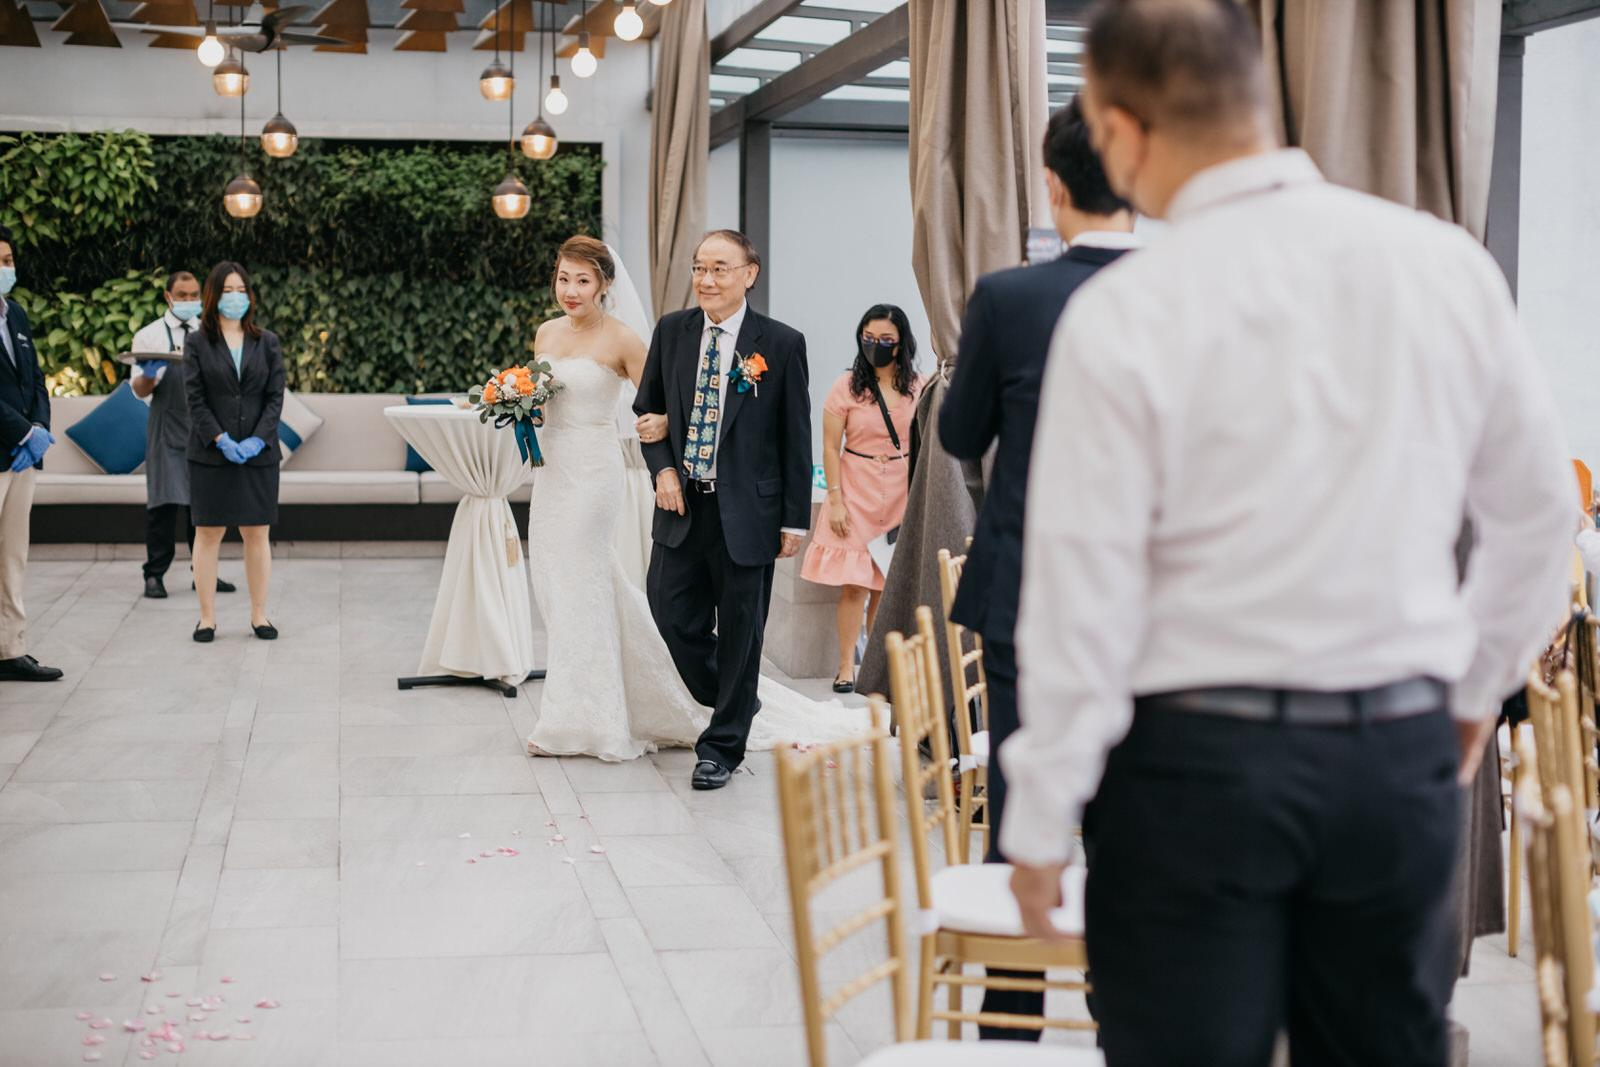 Father & Bride March In Boho Deco Rooftop Poolside Wedding at Hotel Stripes Kuala Lumpur MCO2.0 Cliff Choong Photography Malaysia Covid19 ROM